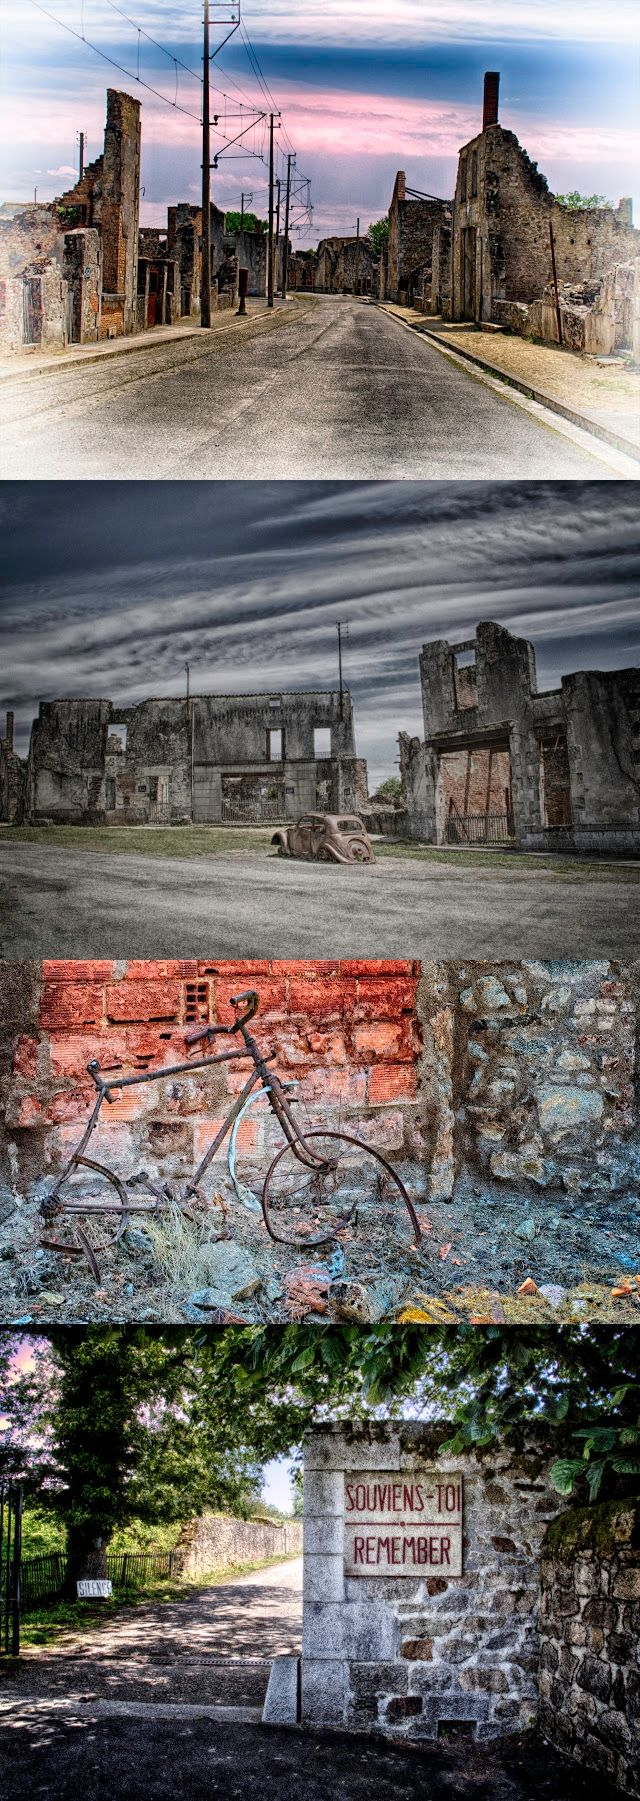 The entire village of Oradour-sur-Glane has been set aside as a French National Memorial, & remains exactly as it was left on June 10th, 1944. The Nazis were looking for a French resistance fighter thought to be hiding in Oradour. The search escalated into a complete slaughter of the men, women and children...over 600...of the village of Oradour-sur-Glane. They then set the village on fire, & many were burned alive.  Photographer Dan Felstead  #memorial